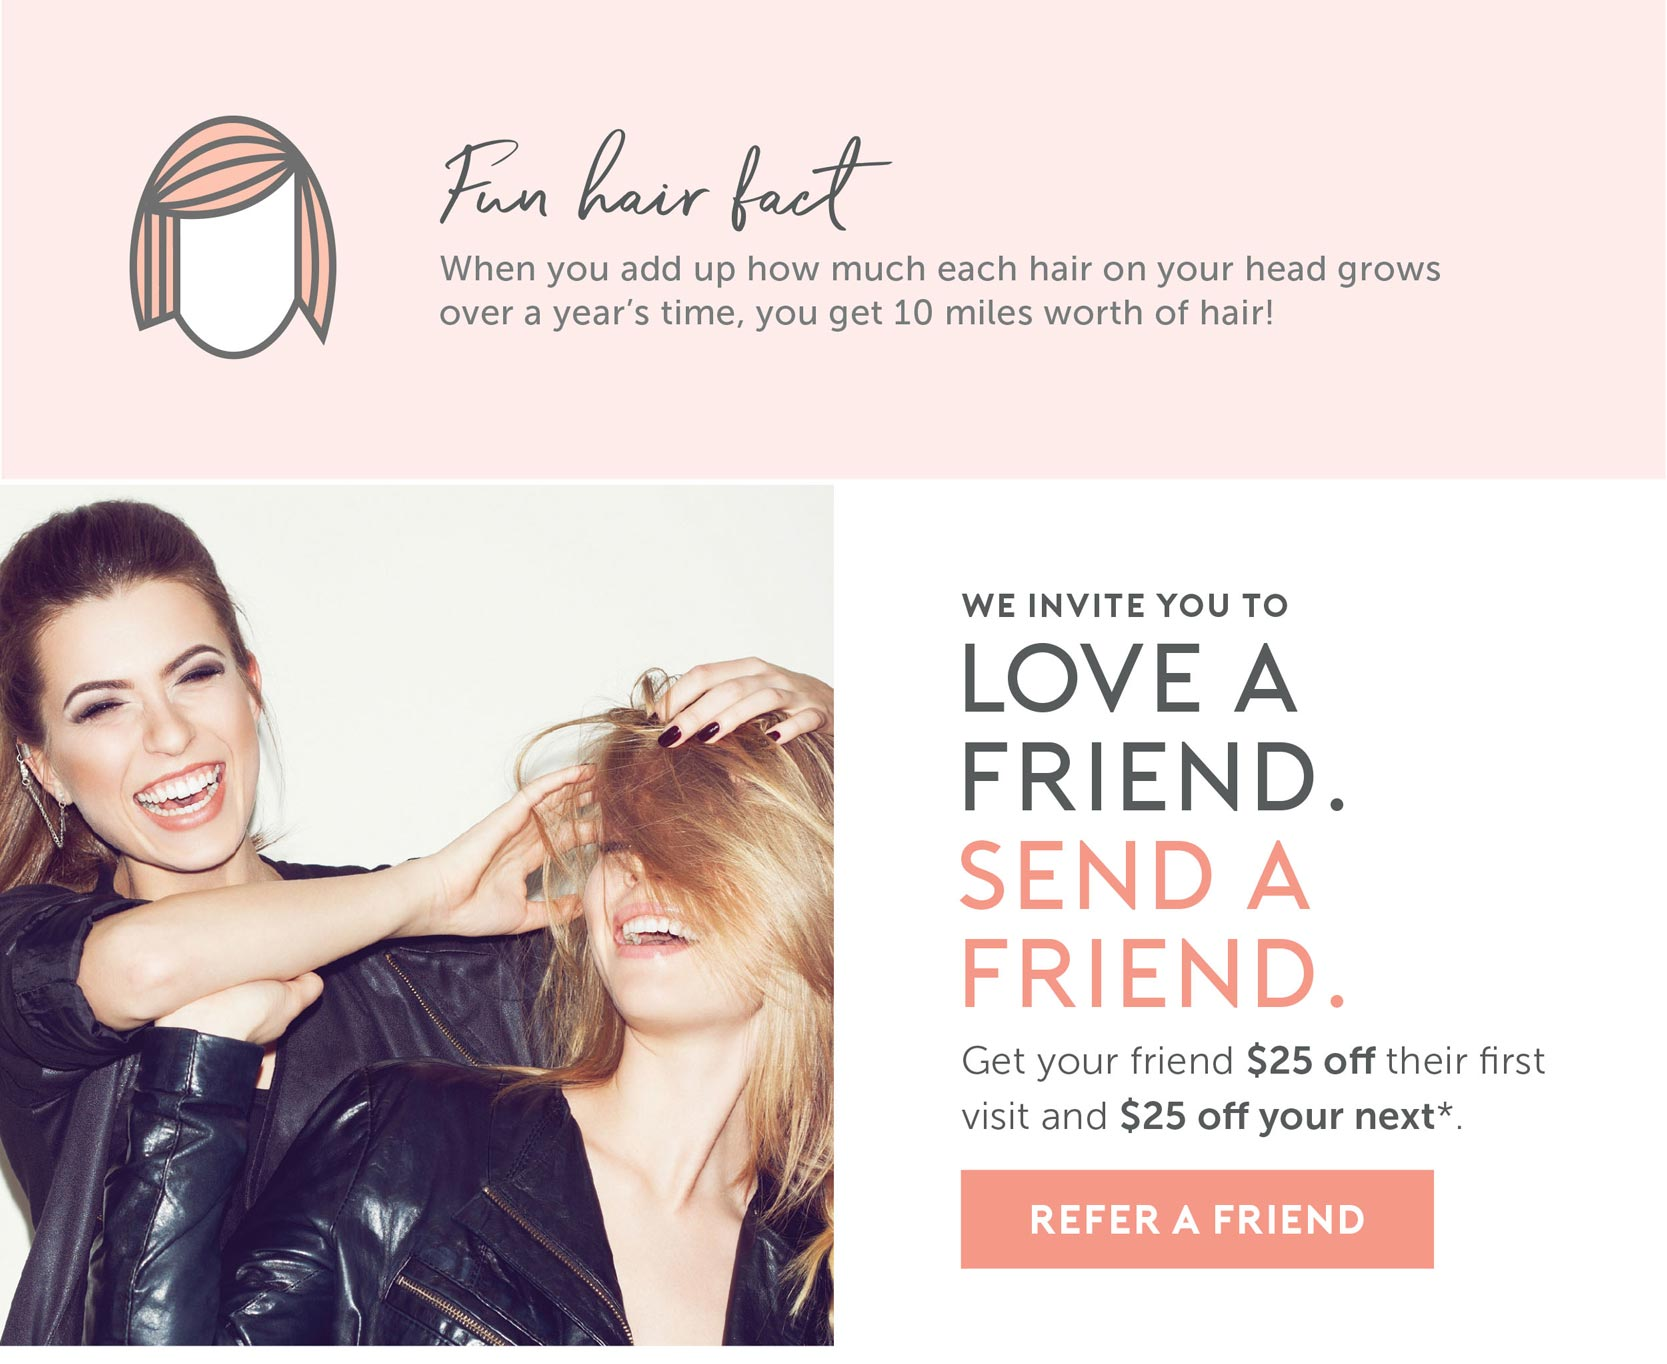 Hair Fact: When you add up how much each hair on your head grows over a year's time, you get 10 miles worth of hair! We invite you to love a friend. send a friend. Give $25 off their first visit and $25 off your next.